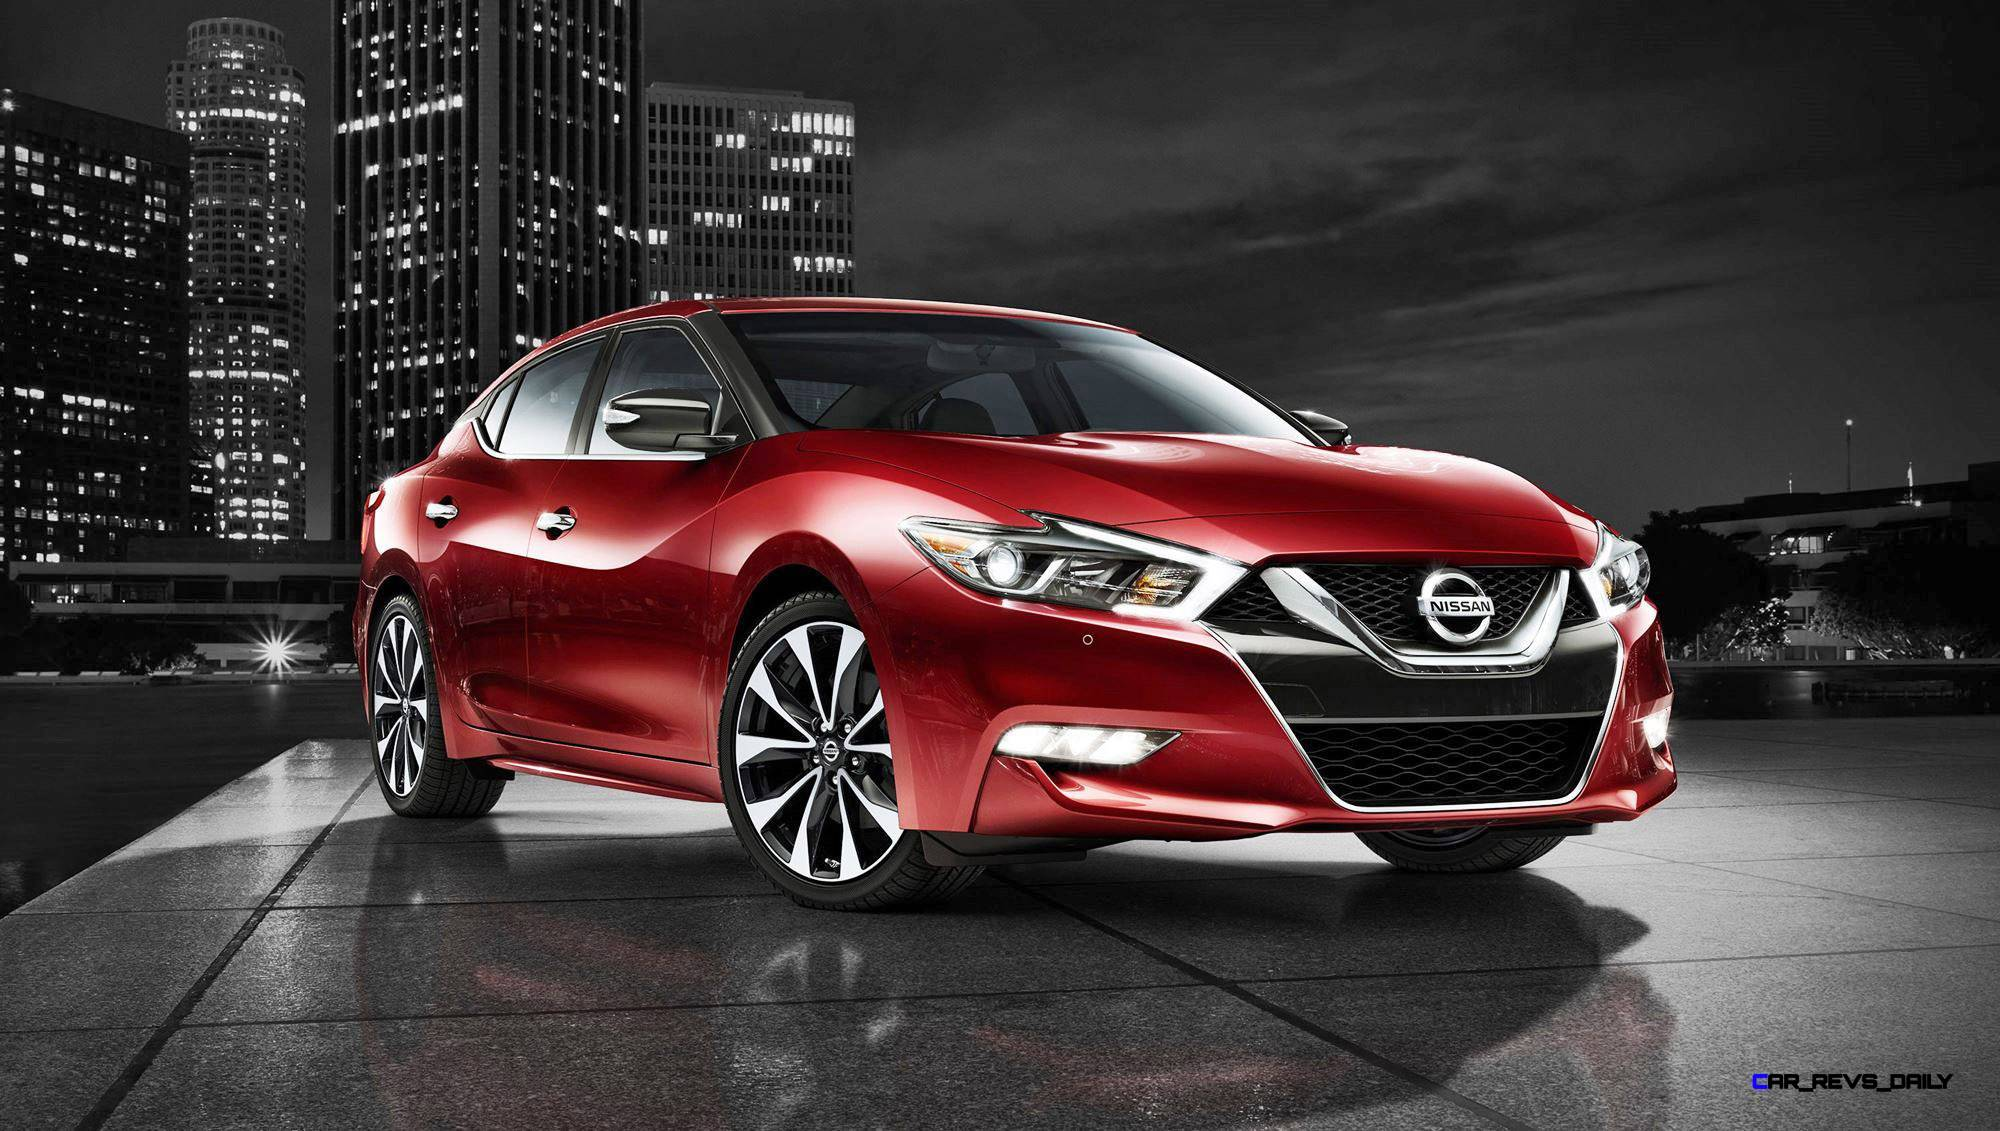 2016 nissan maxima coulis red side view night skyline zoom